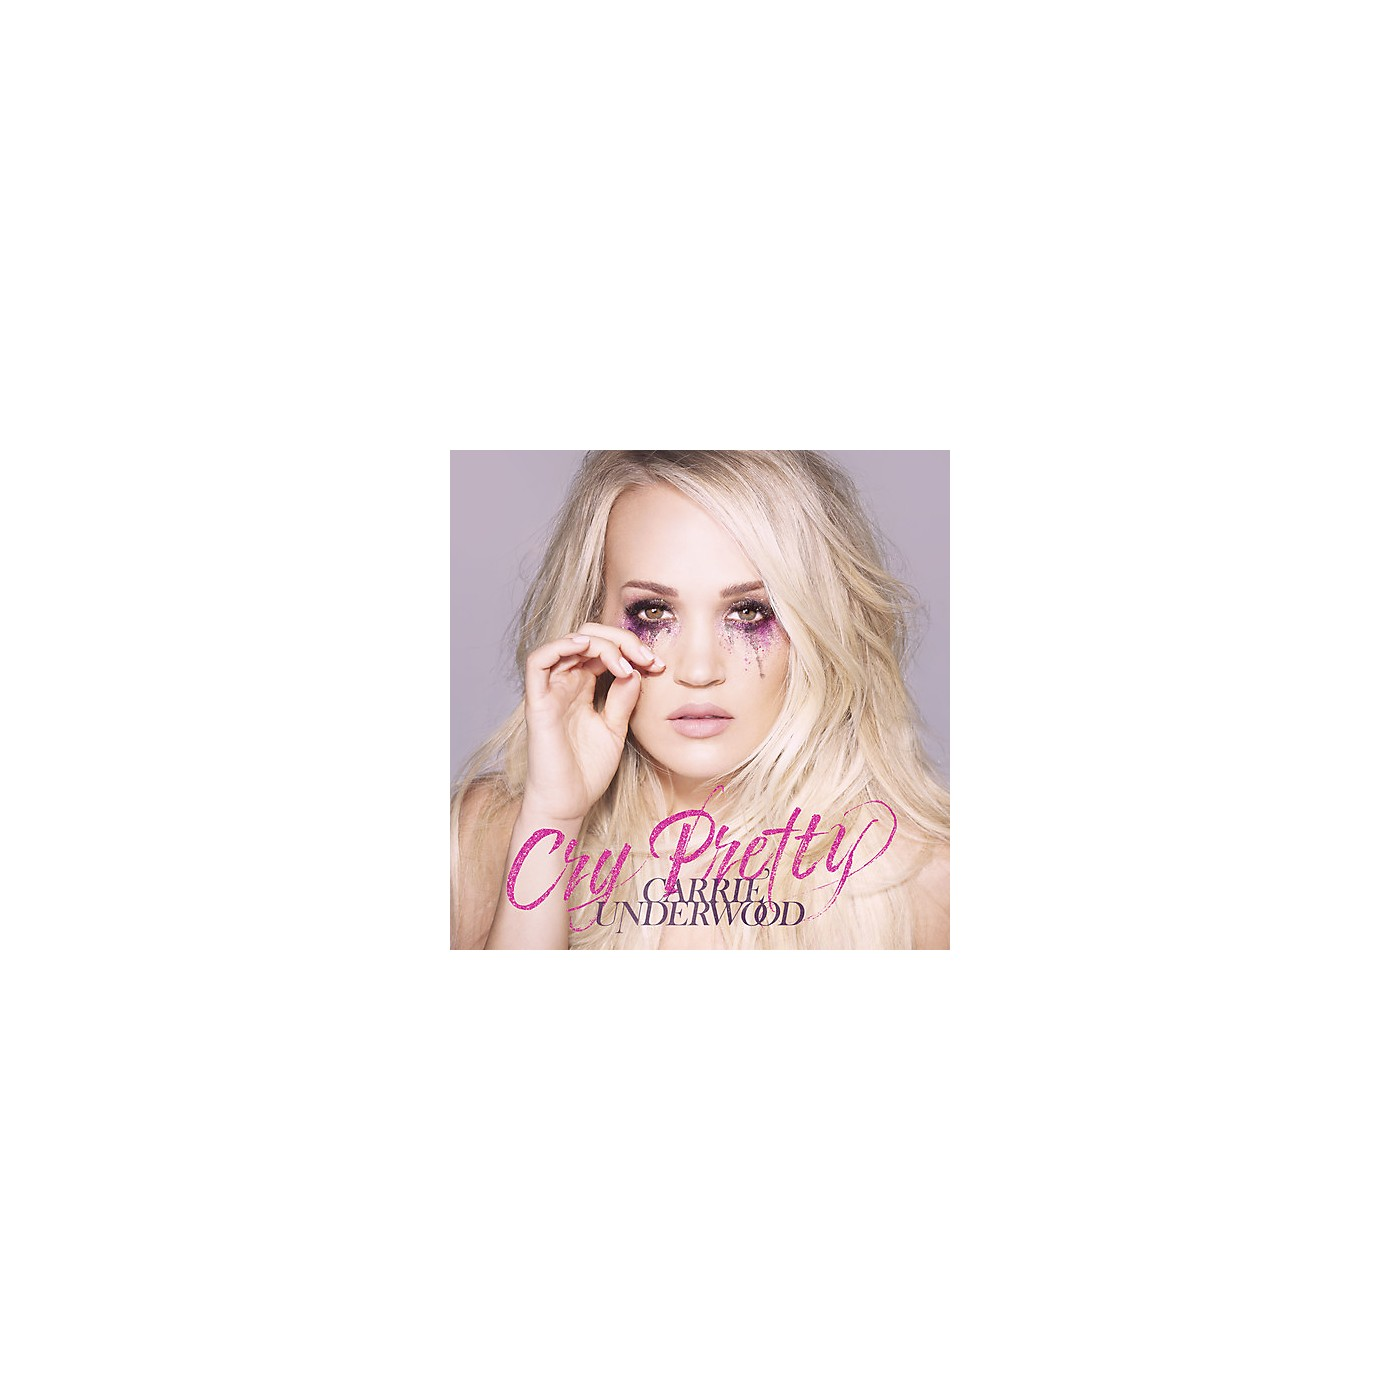 Alliance Carrie Underwood - Cry Pretty thumbnail